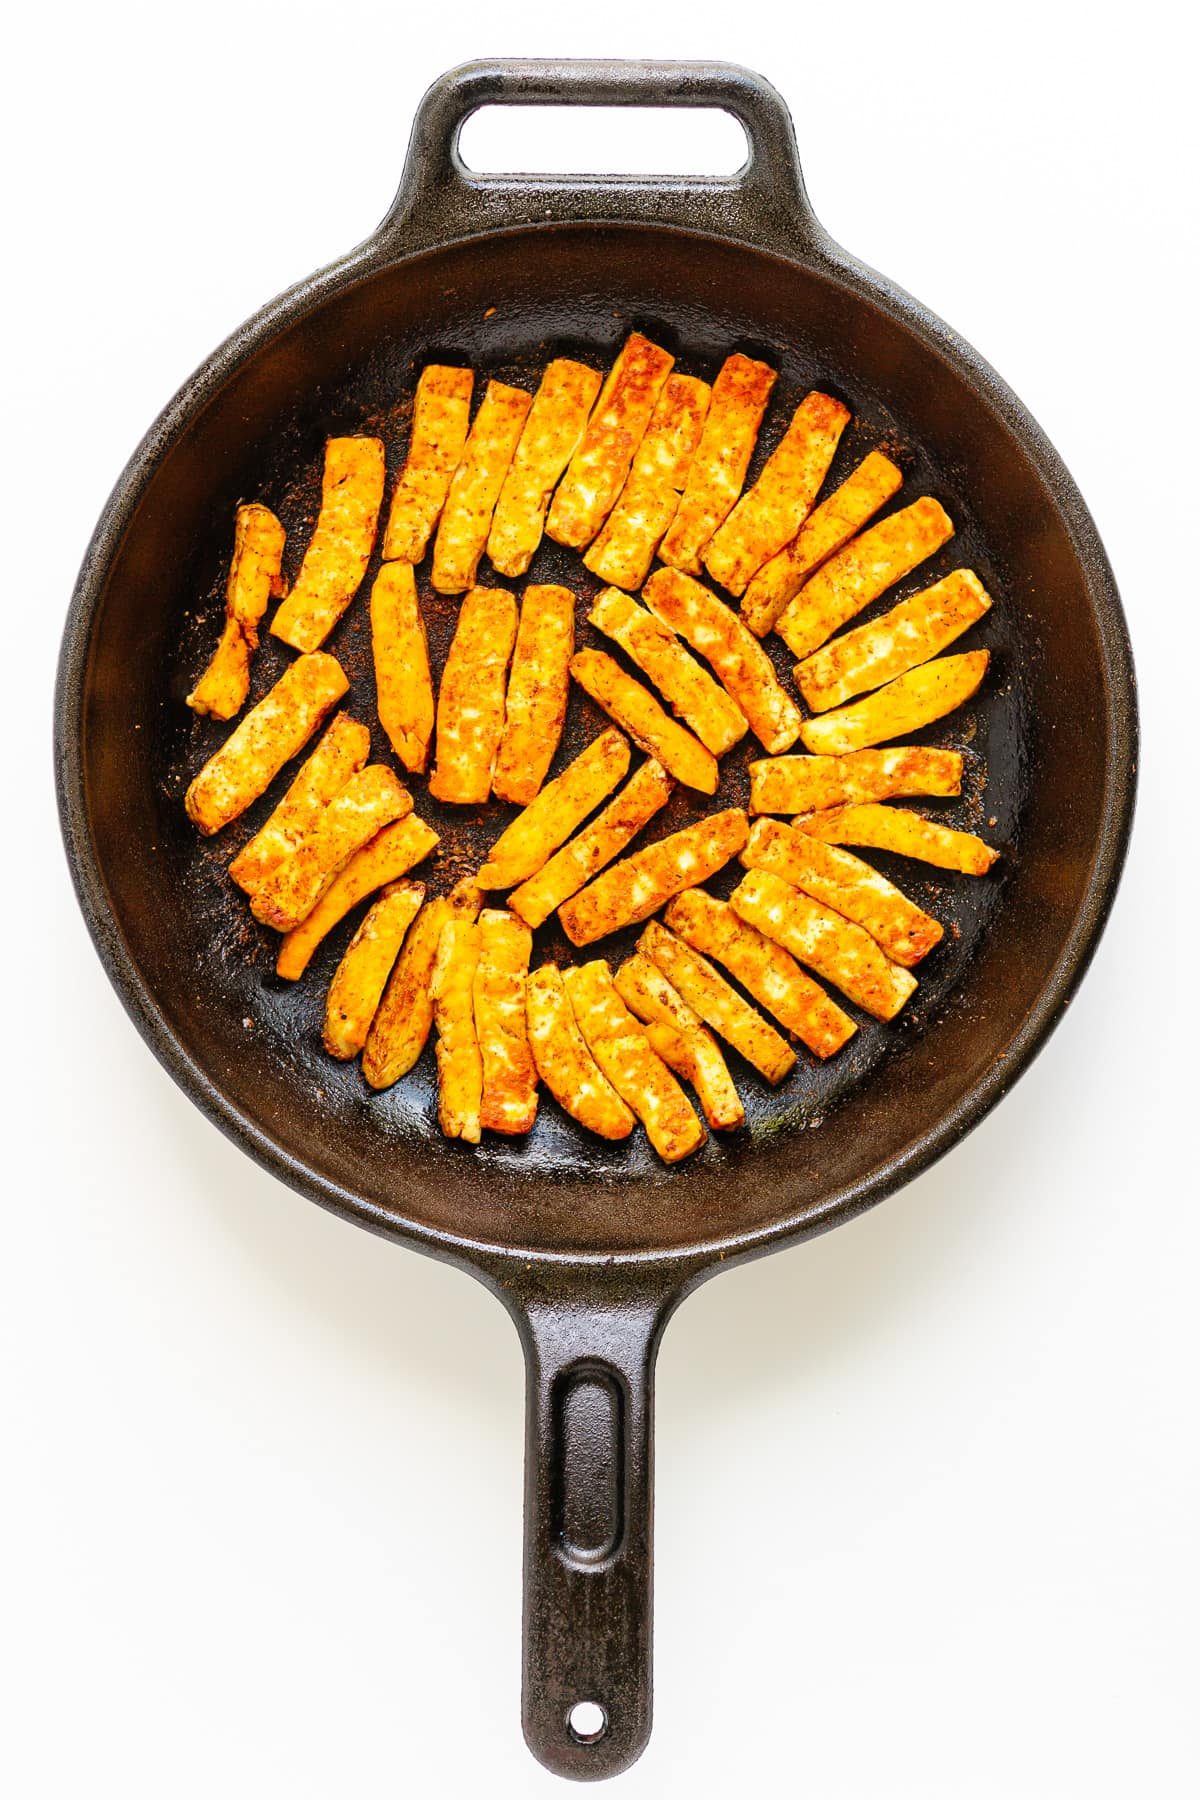 Fried halloumi strips in a cast iron skillet.